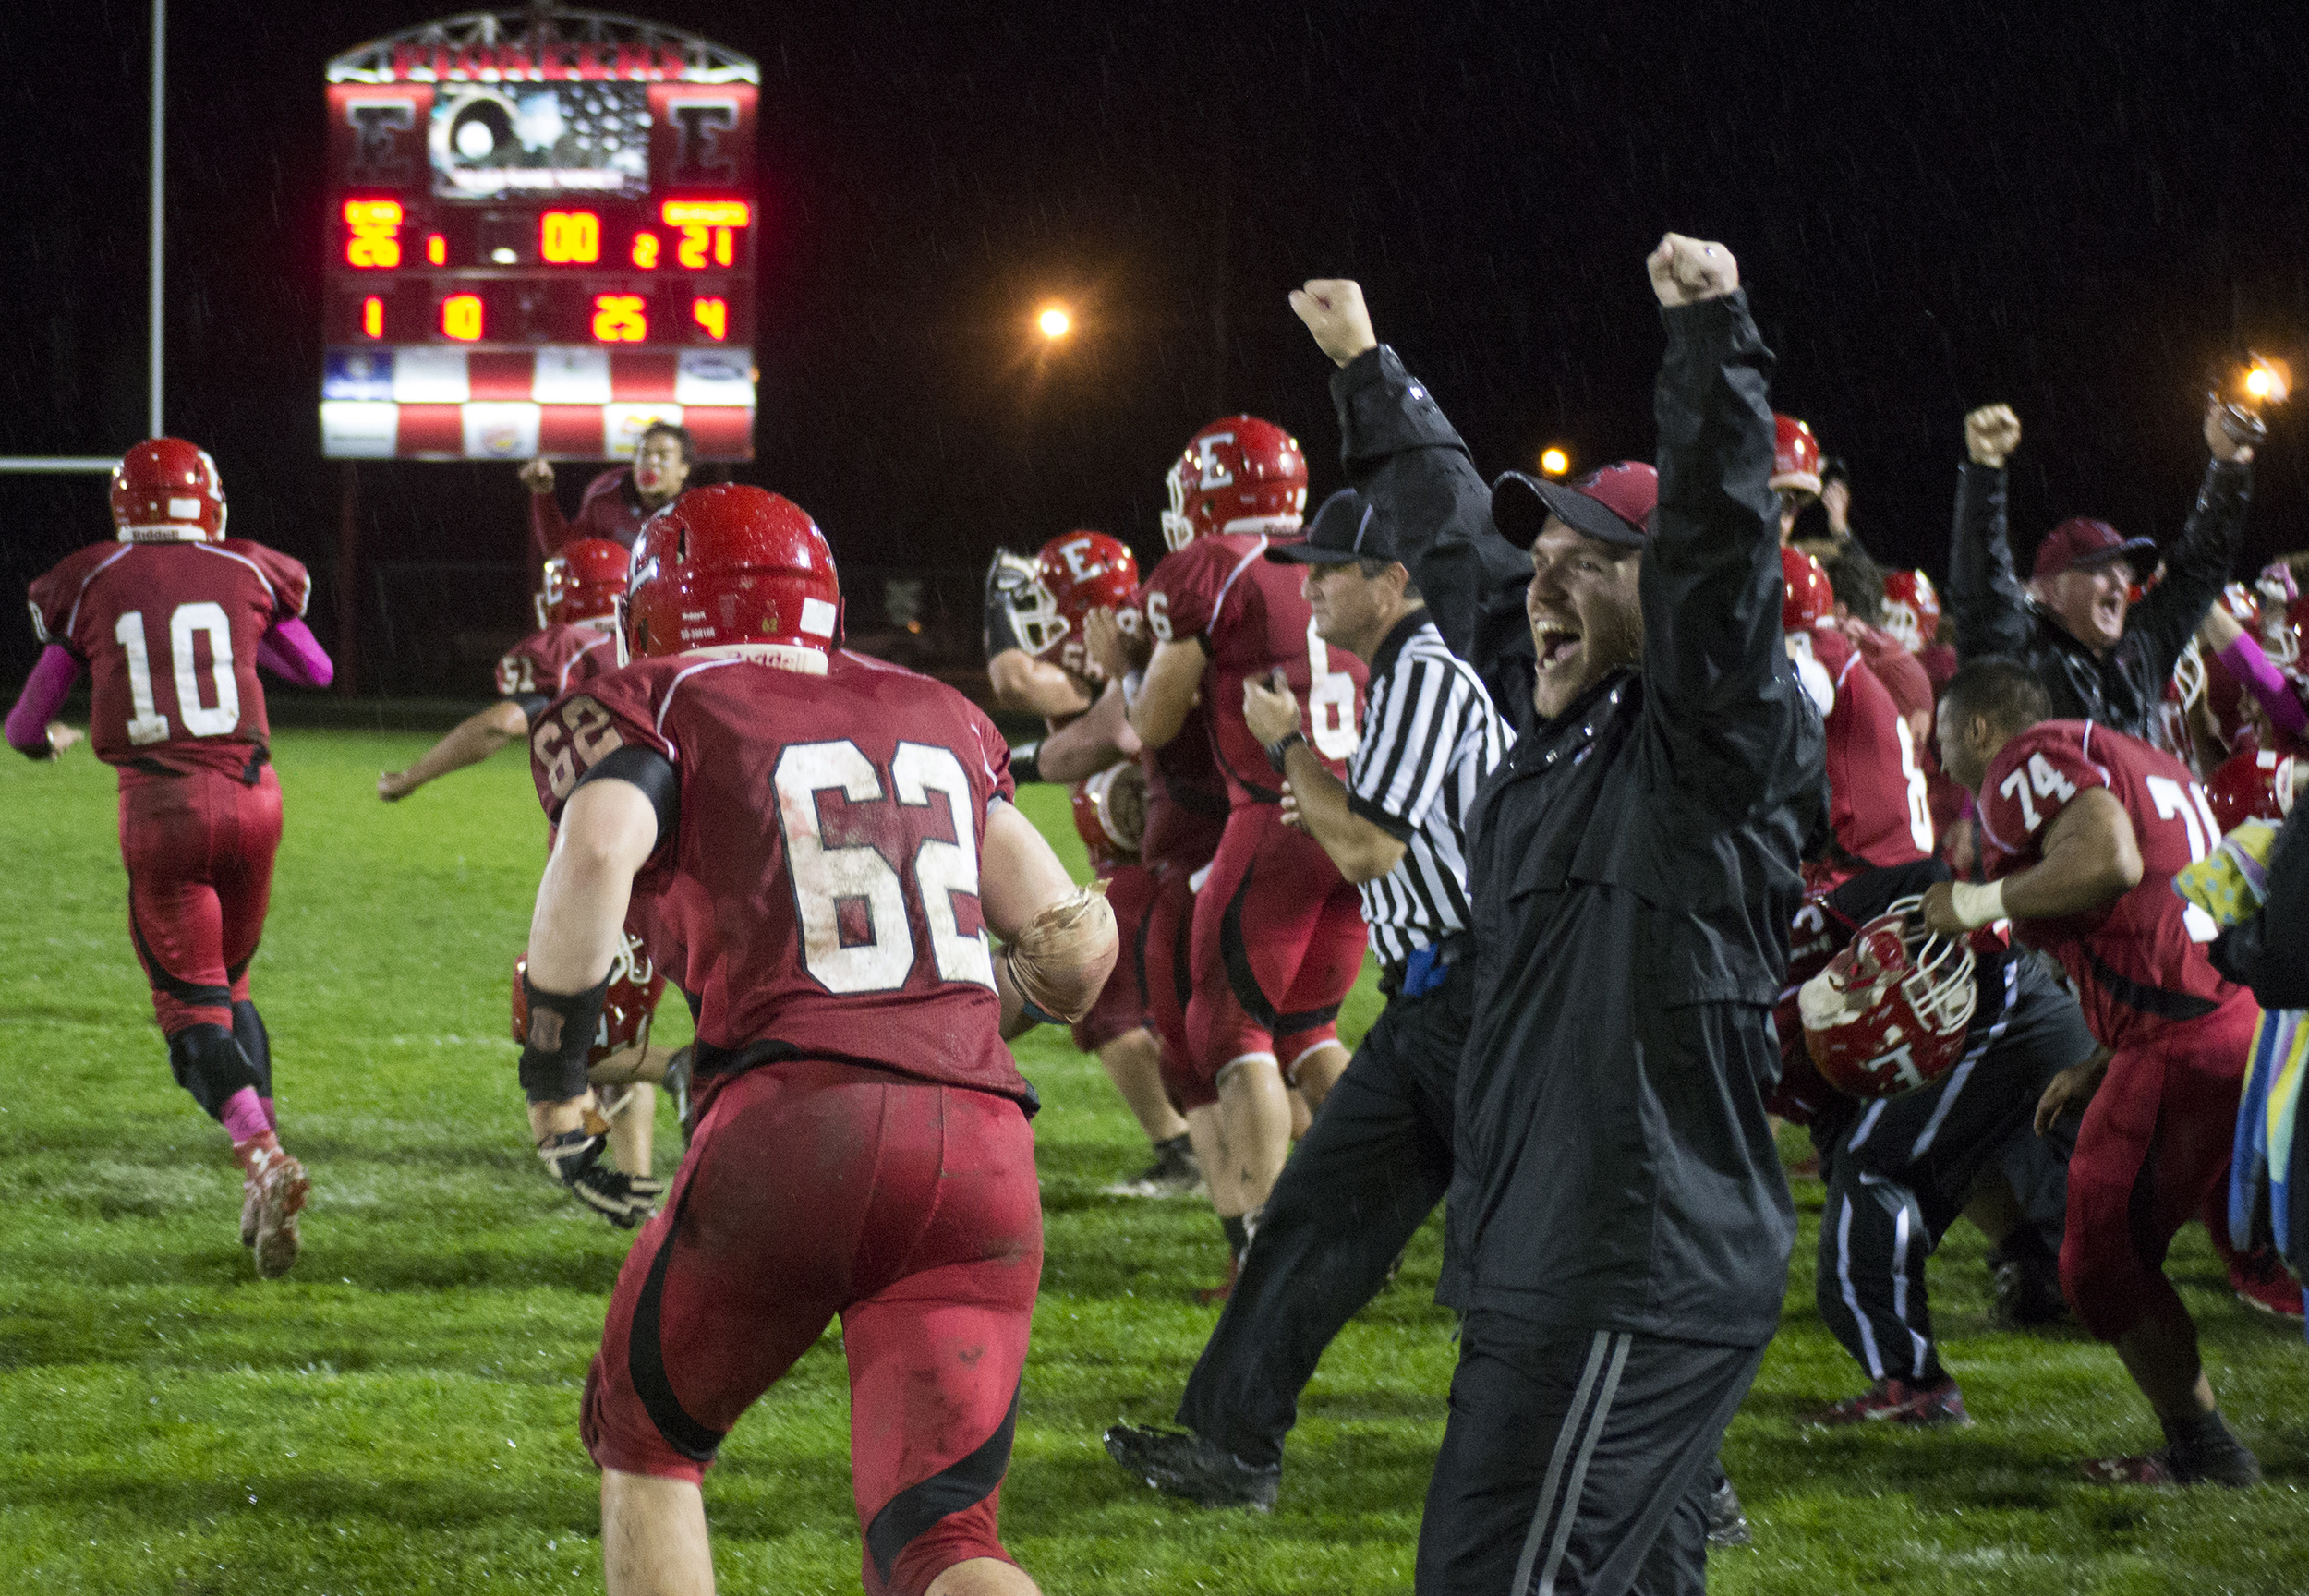 The Elyria High School football team rush onto field after a last second touchdown scored by Junior wide receiver Mikah Price won them their homecoming against Brunswick High School on Oct. 3, 2014.